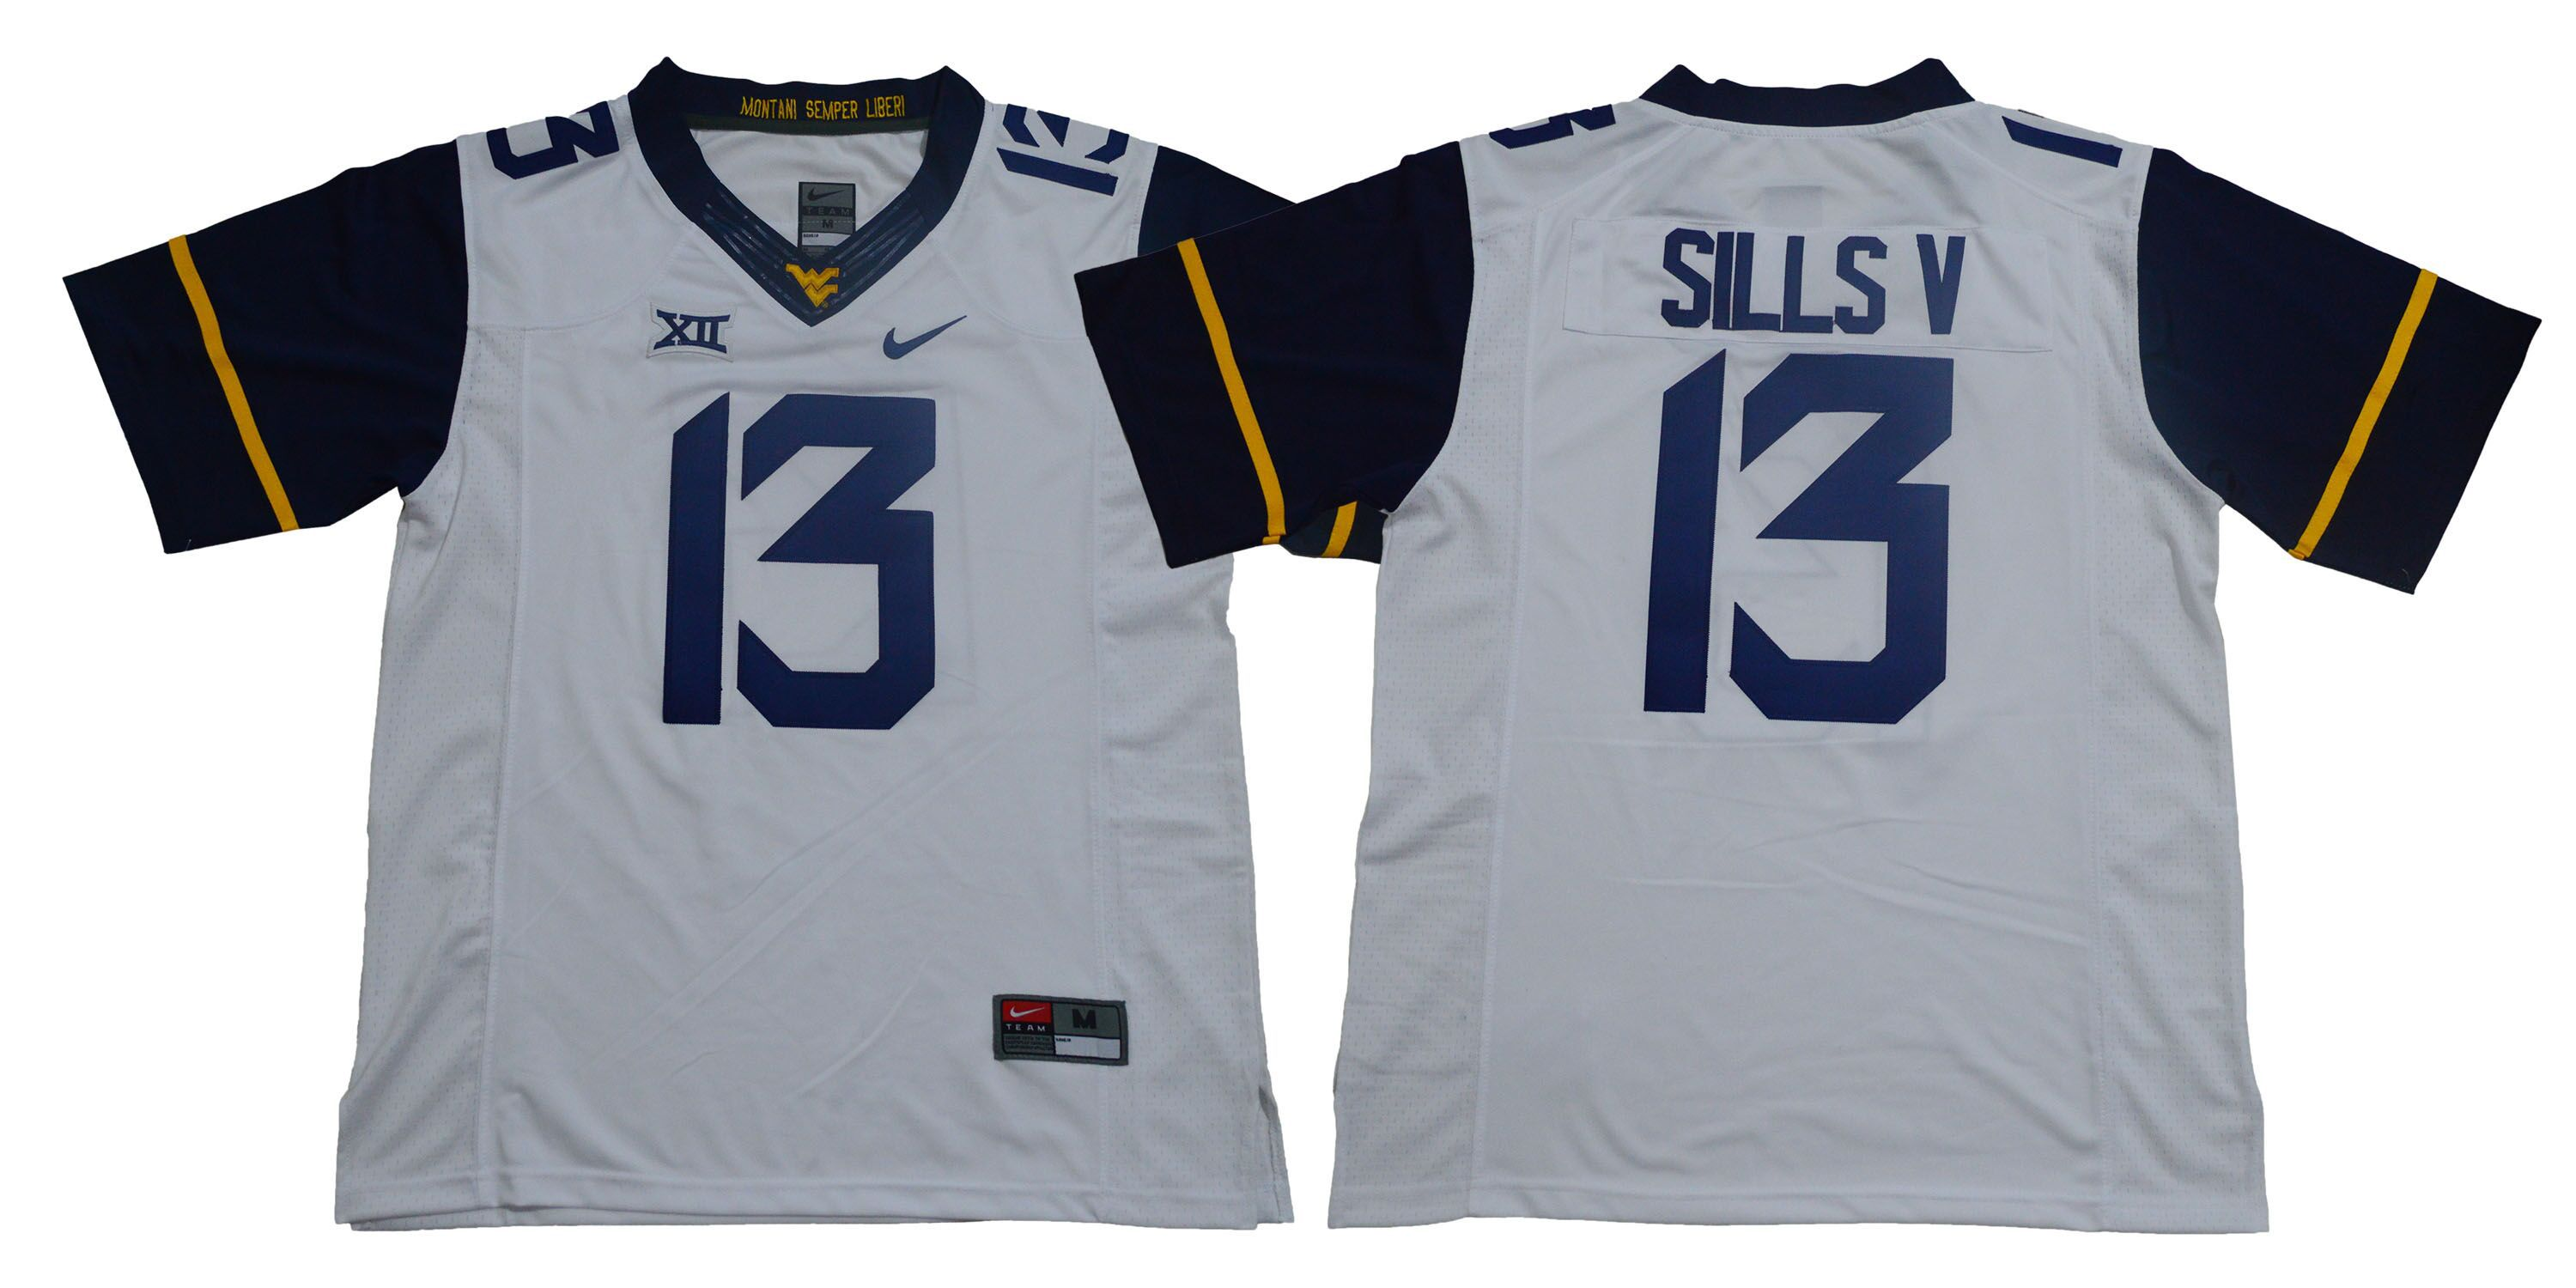 Men West Virginia Mountaineers 13 Sills v White Nike NCAA jersey